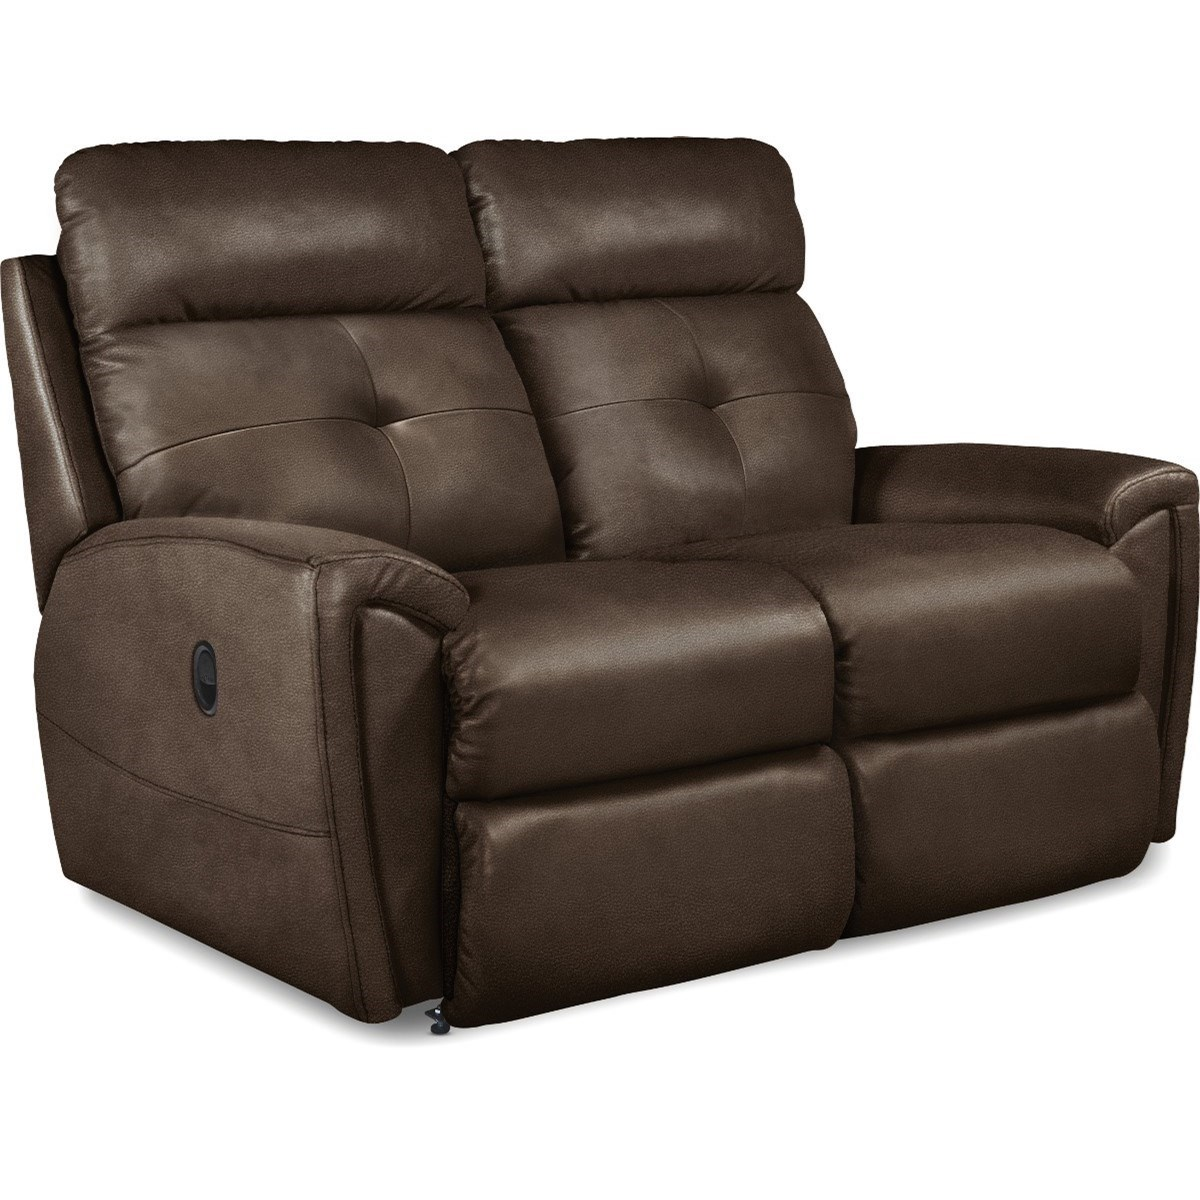 Douglas Power Reclining Loveseat w/ Headrest  by La-Z-Boy at SuperStore